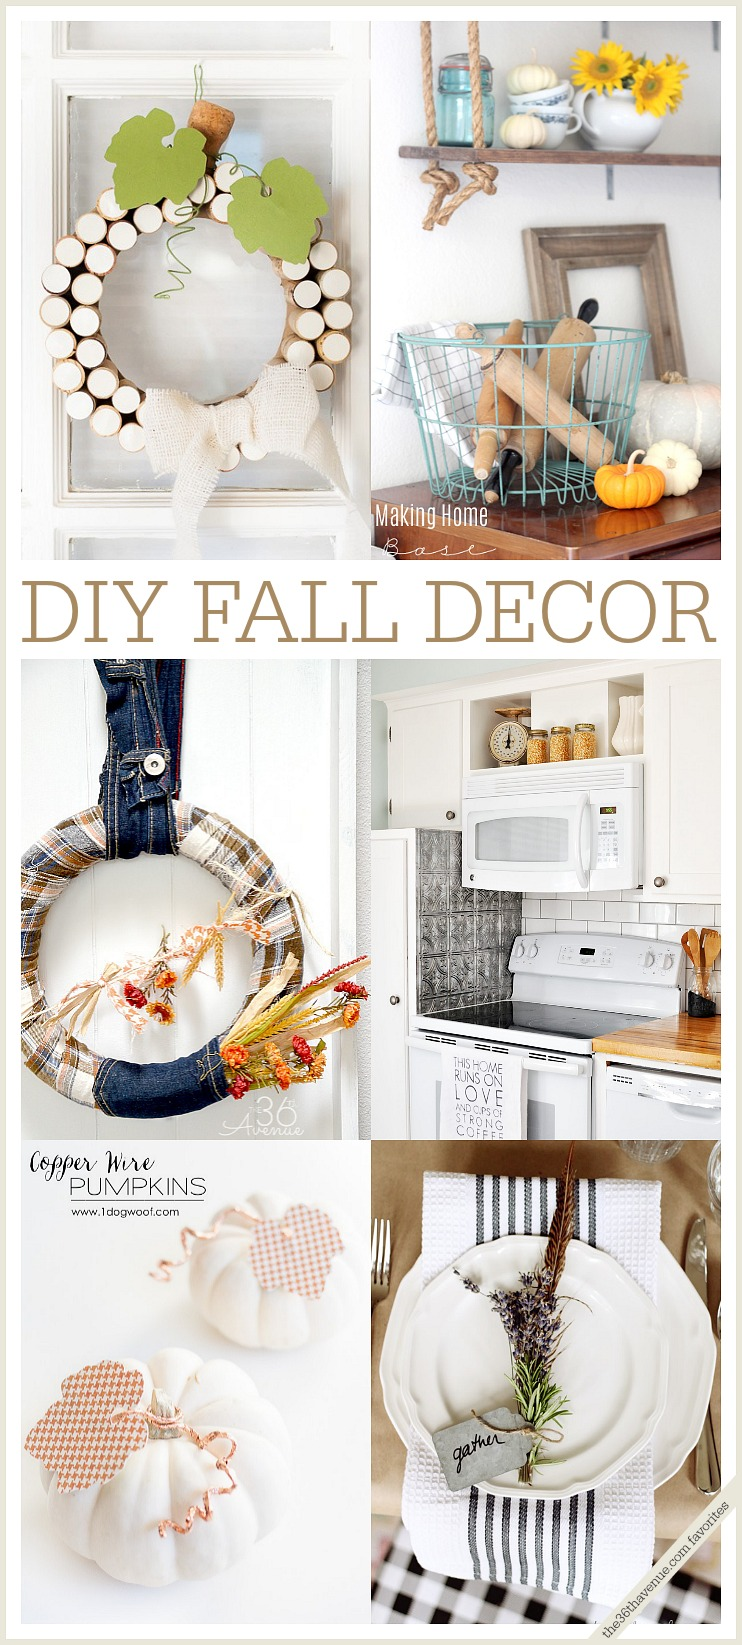 DIY Fall Decor at the36thavenue.com